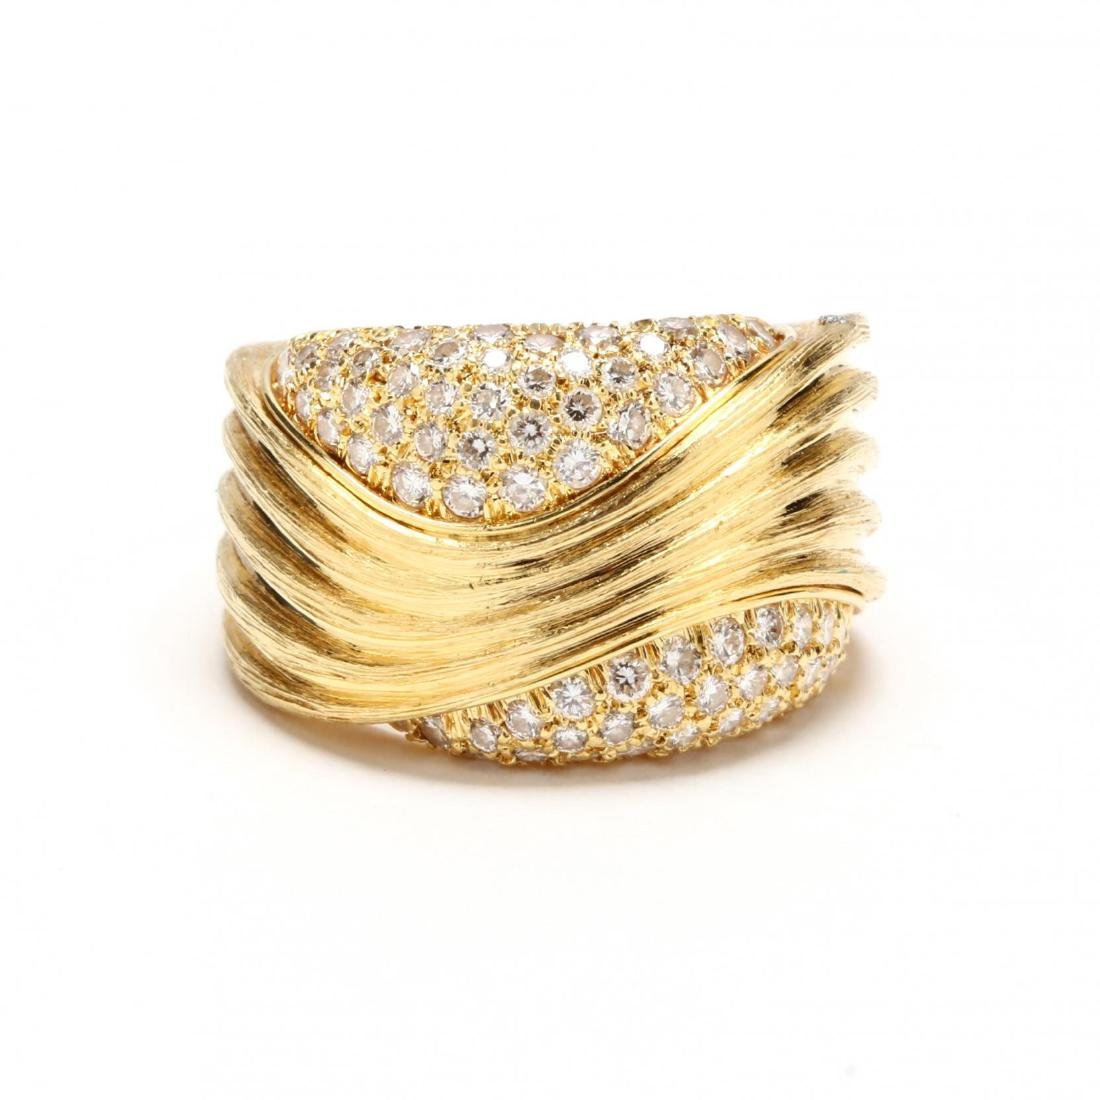 18KT Gold and Diamond Ring, Henry Dunay